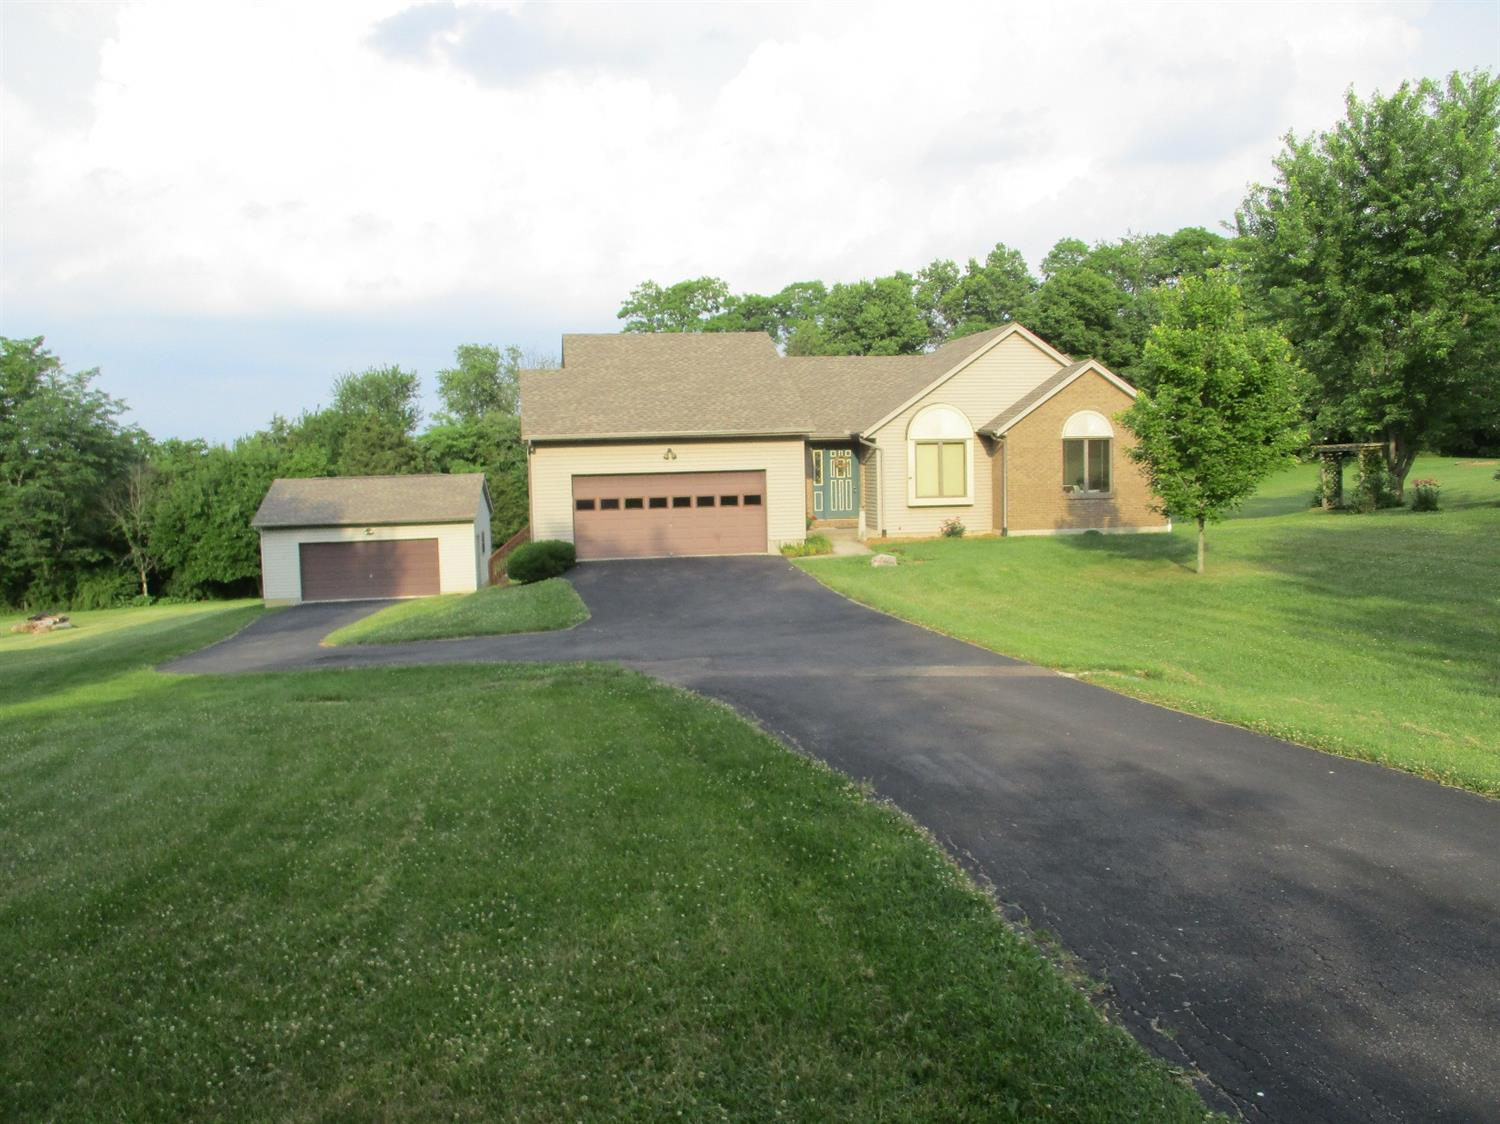 Photo 1 for 27084 Valley Vista Dr Logan Twp, IN 47060